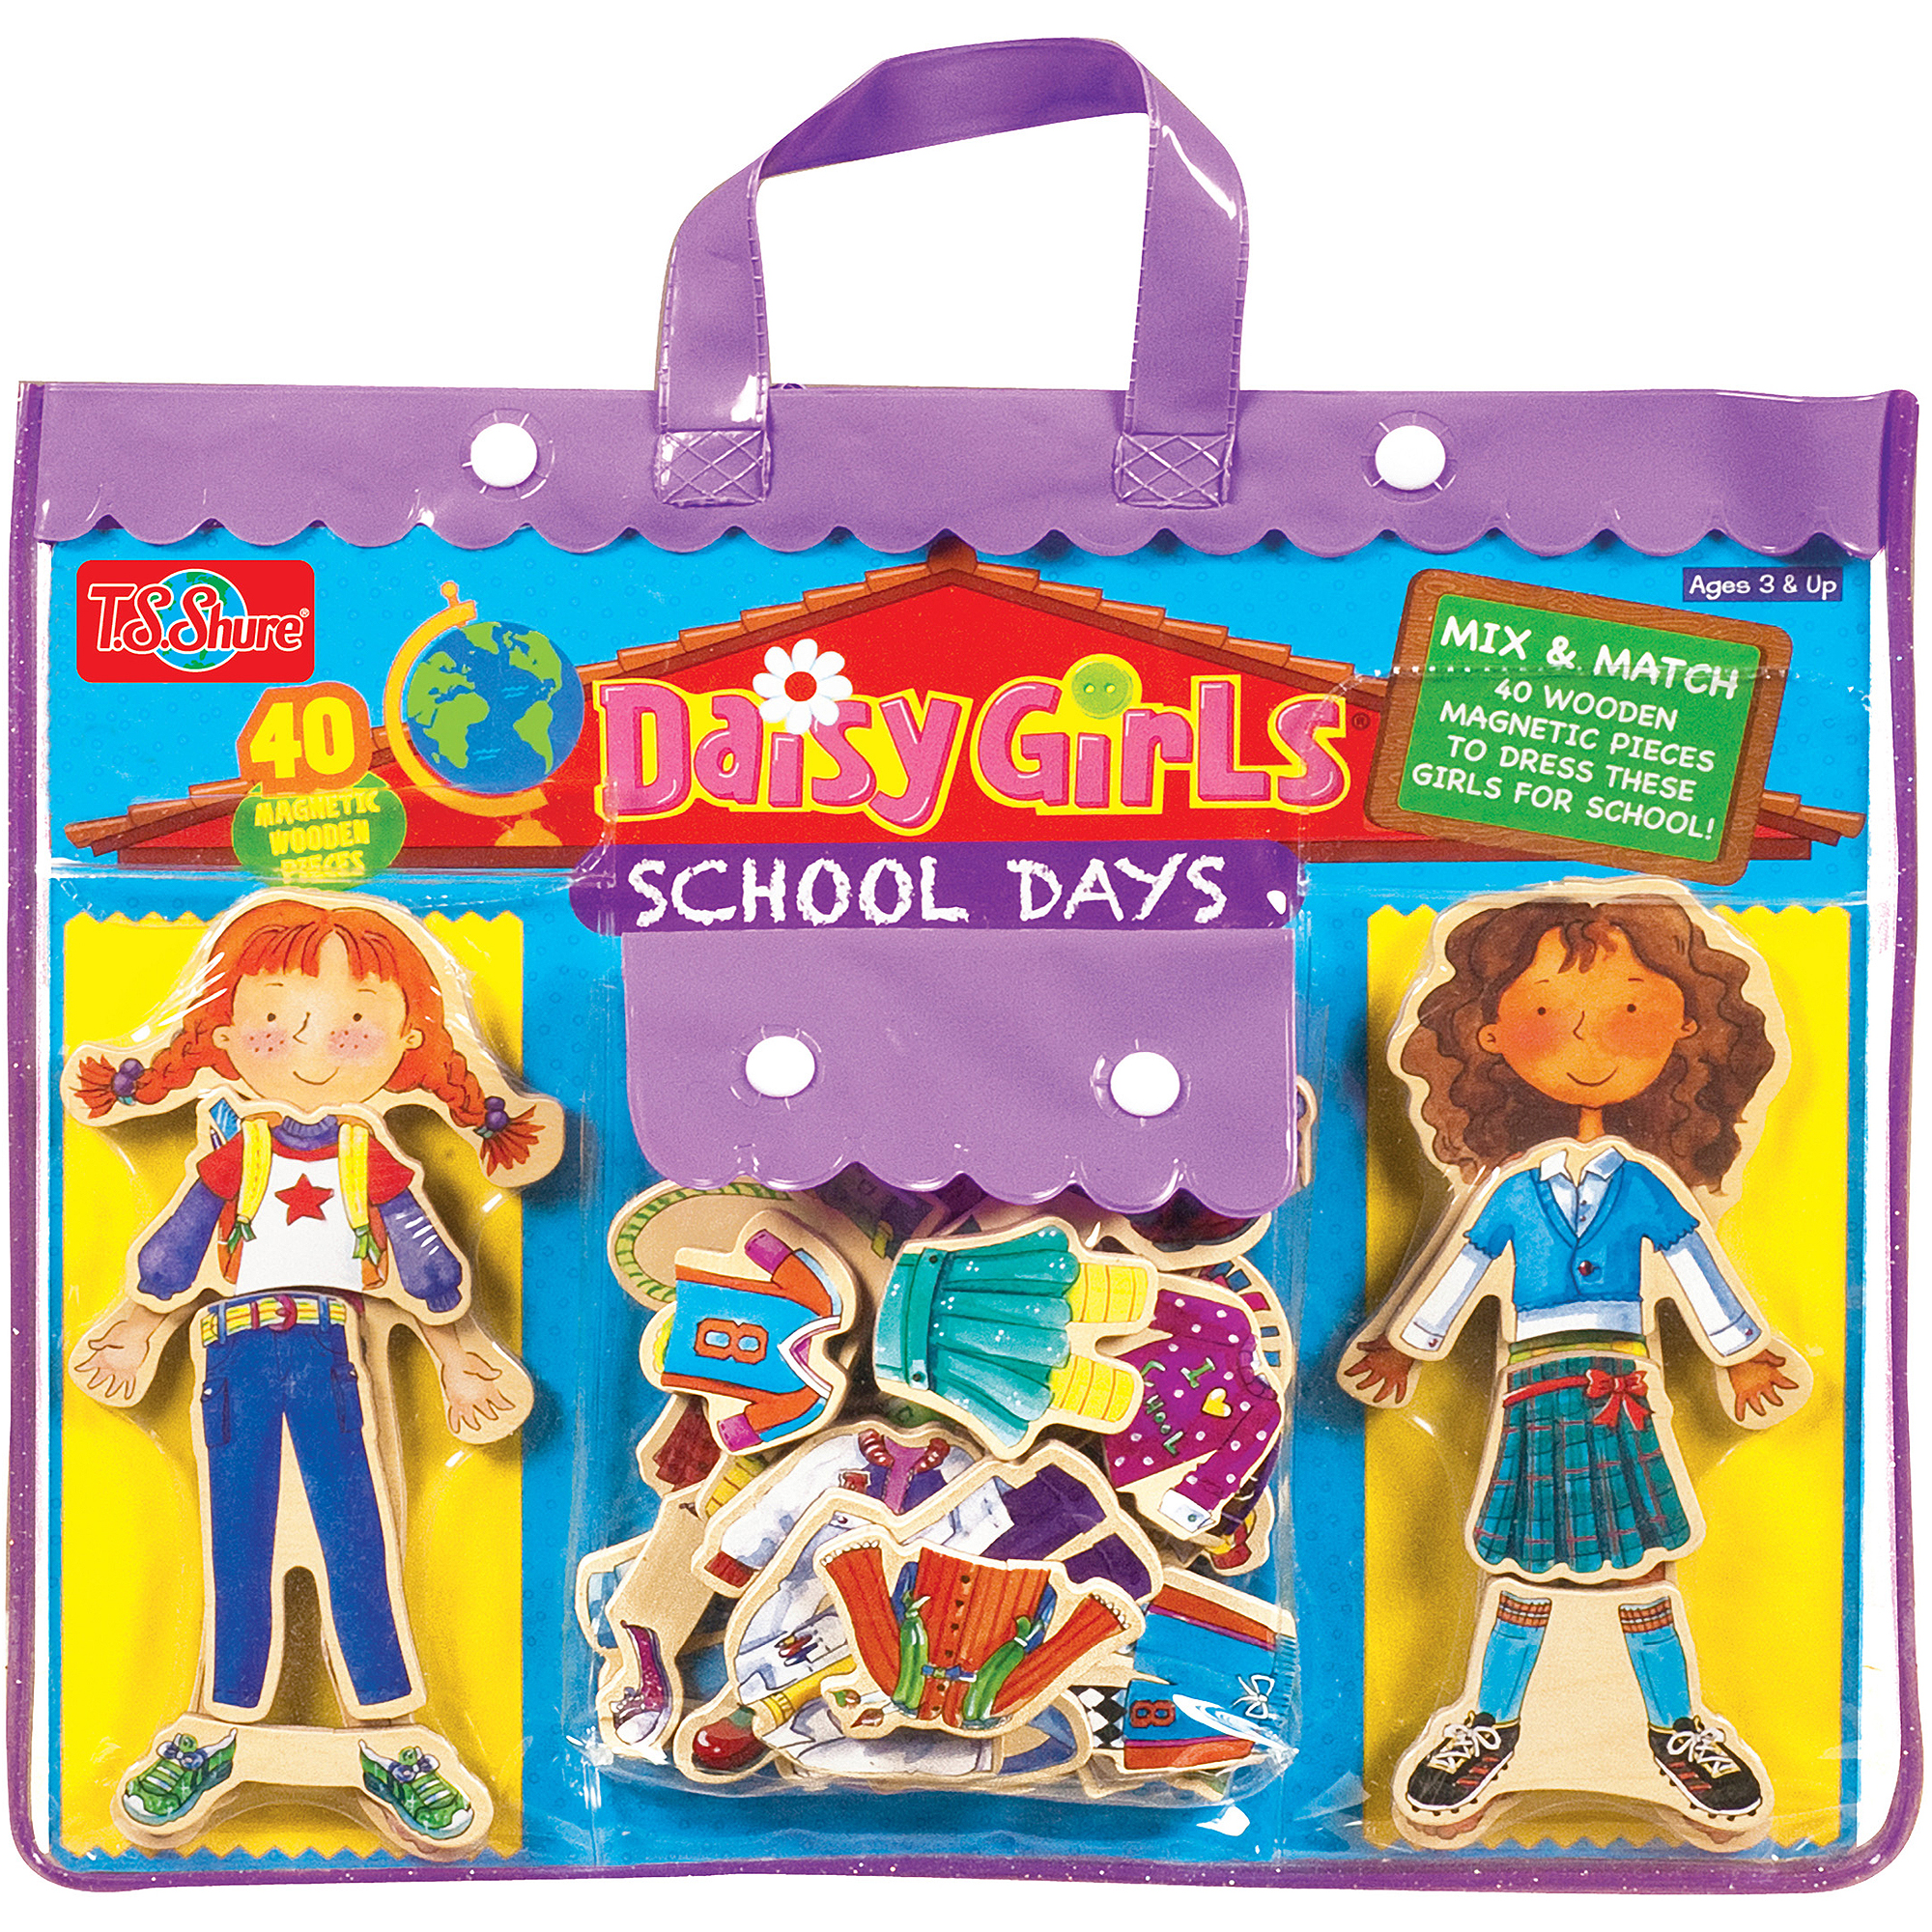 T.S. Shure Daisy Girls' School Days Wooden Magnetic Dress-Up Dolls